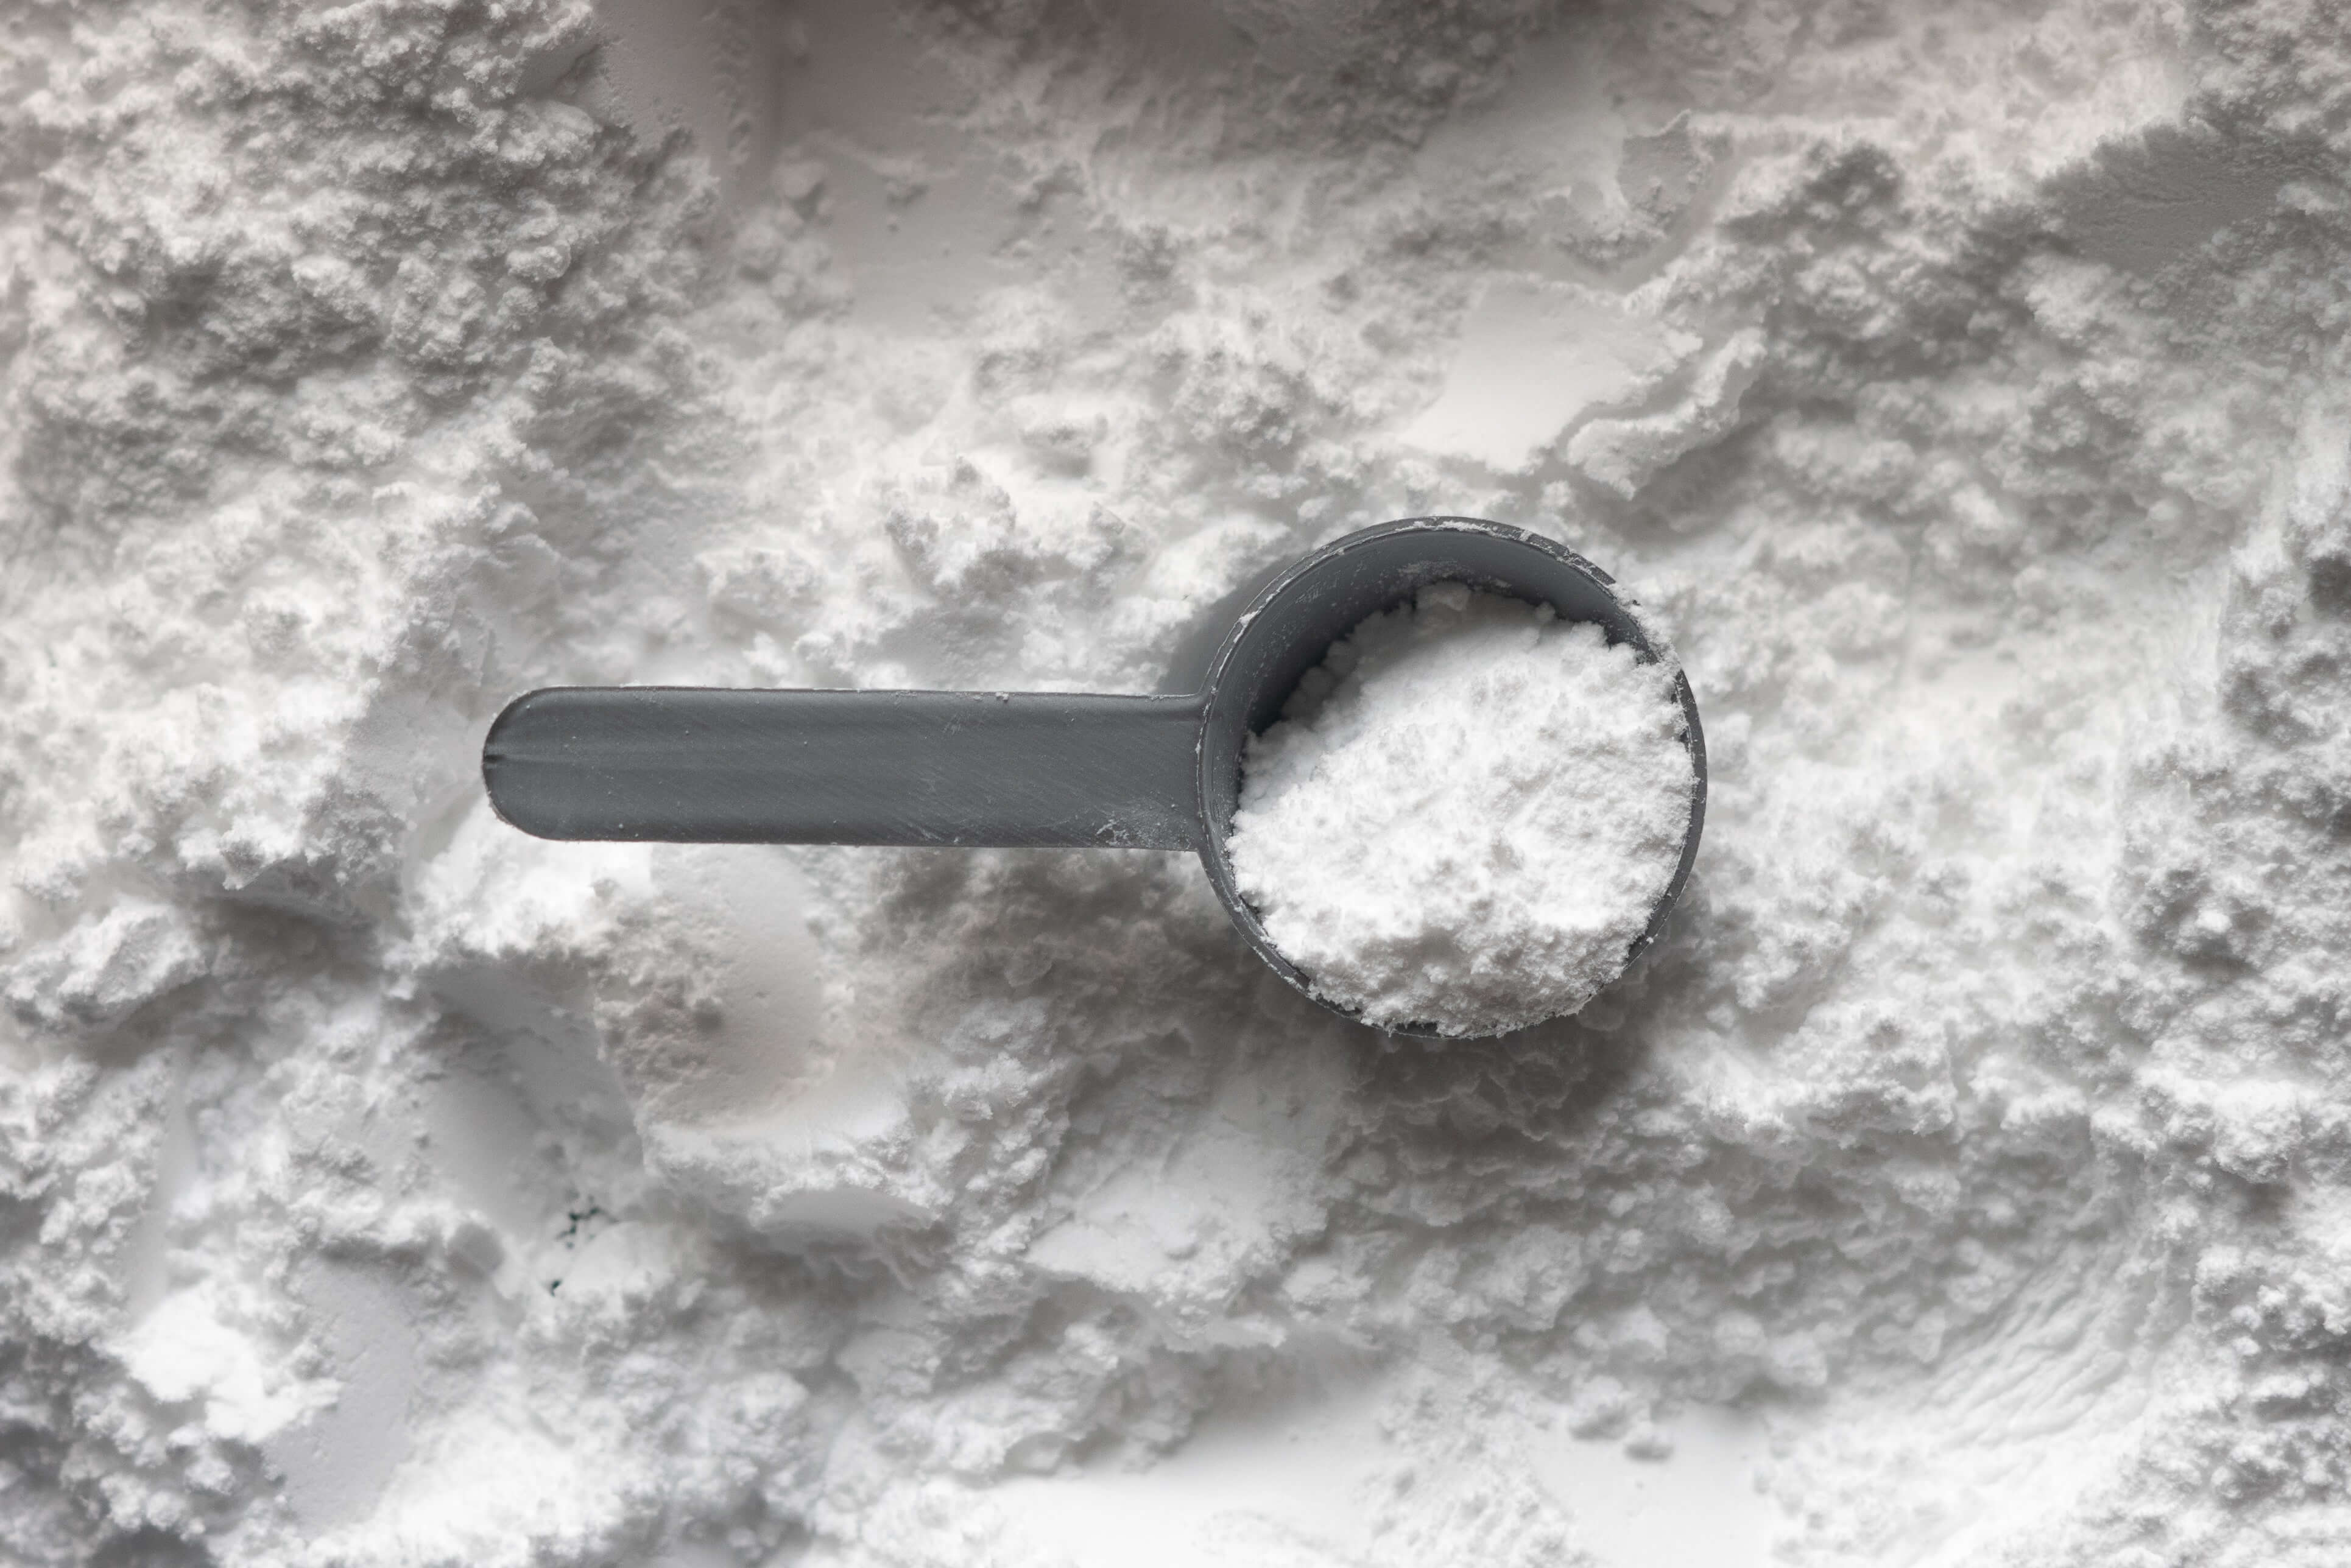 A grey scoop containing white powder